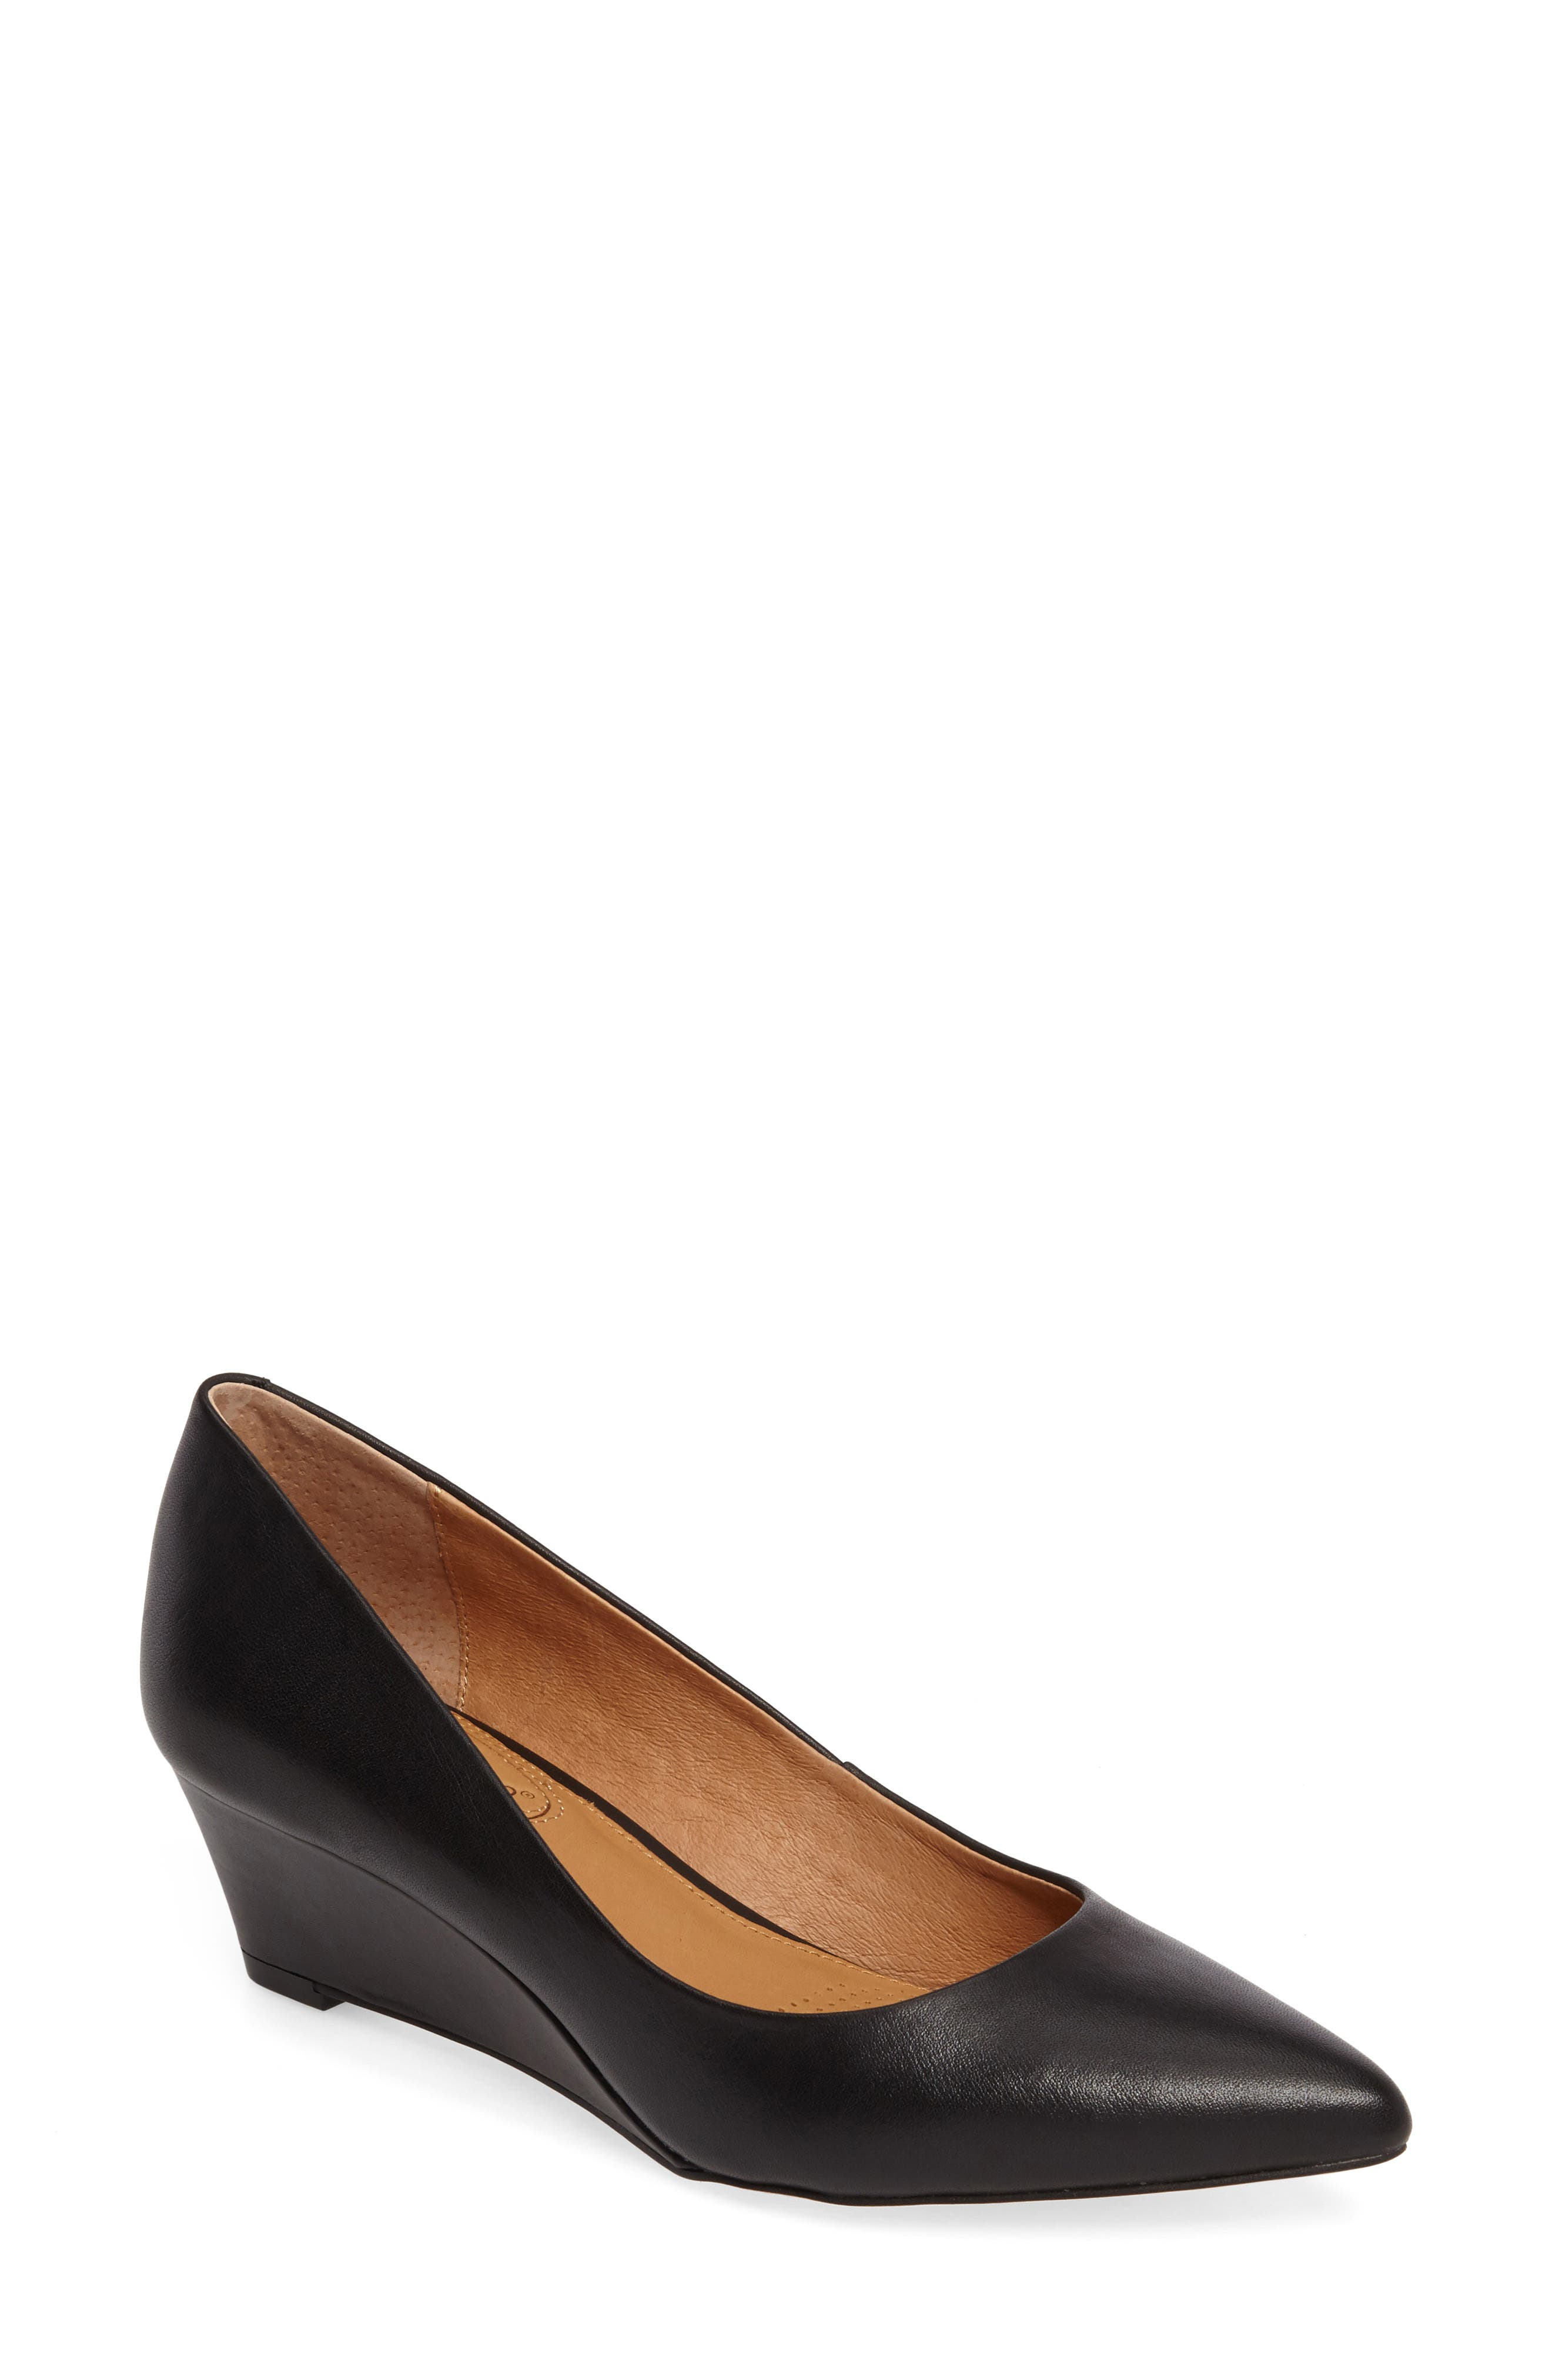 Nelly Pointy Toe Wedge Pump,                         Main,                         color, Black Leather